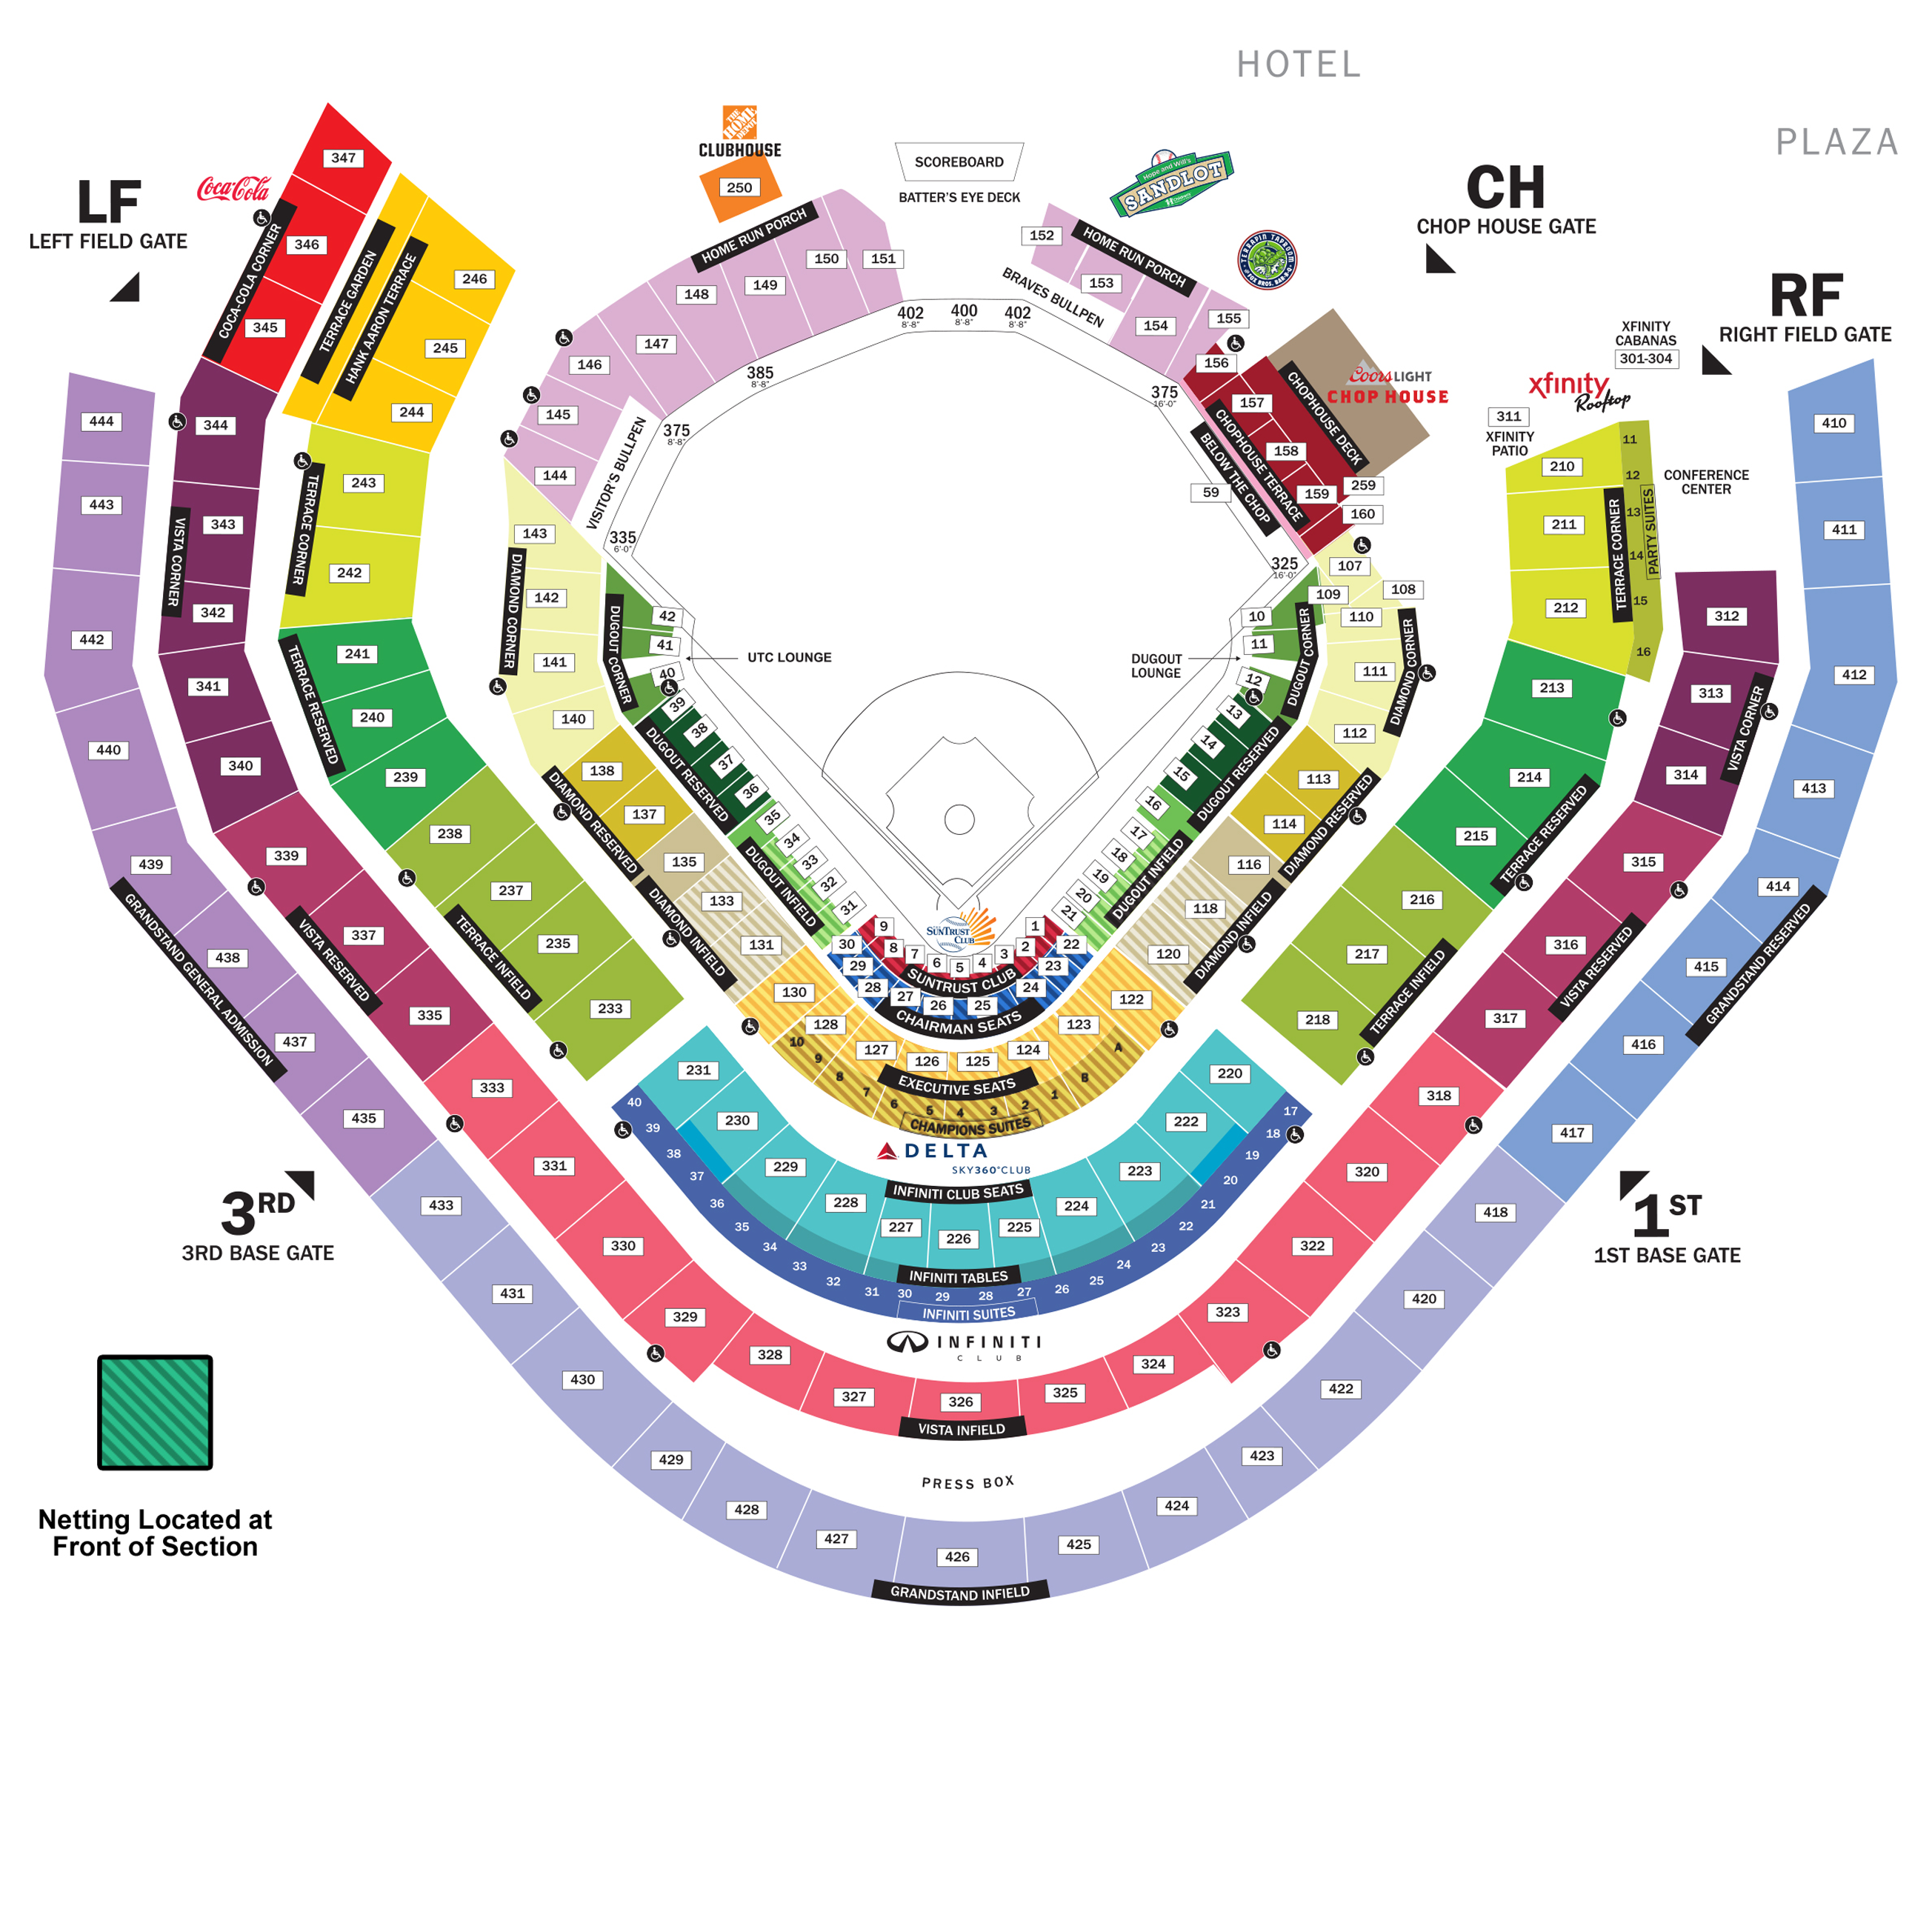 Braves Stadium Map SunTrust Park Seating Chart | Atlanta Braves Braves Stadium Map